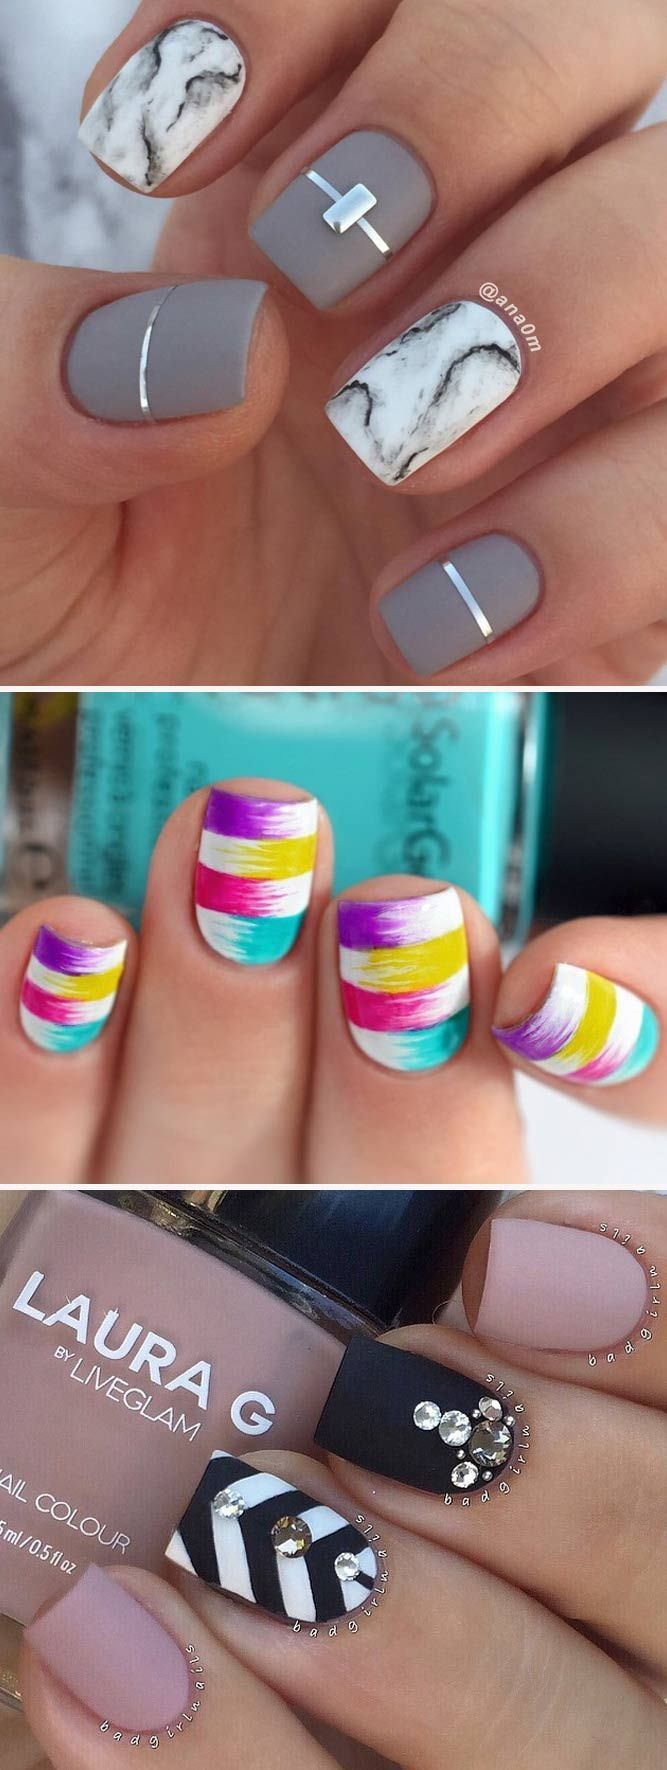 1204 best nails images on pinterest nail scissors cute nails we have a great photo gallery that presents you pretty nail designs look through our prinsesfo Choice Image